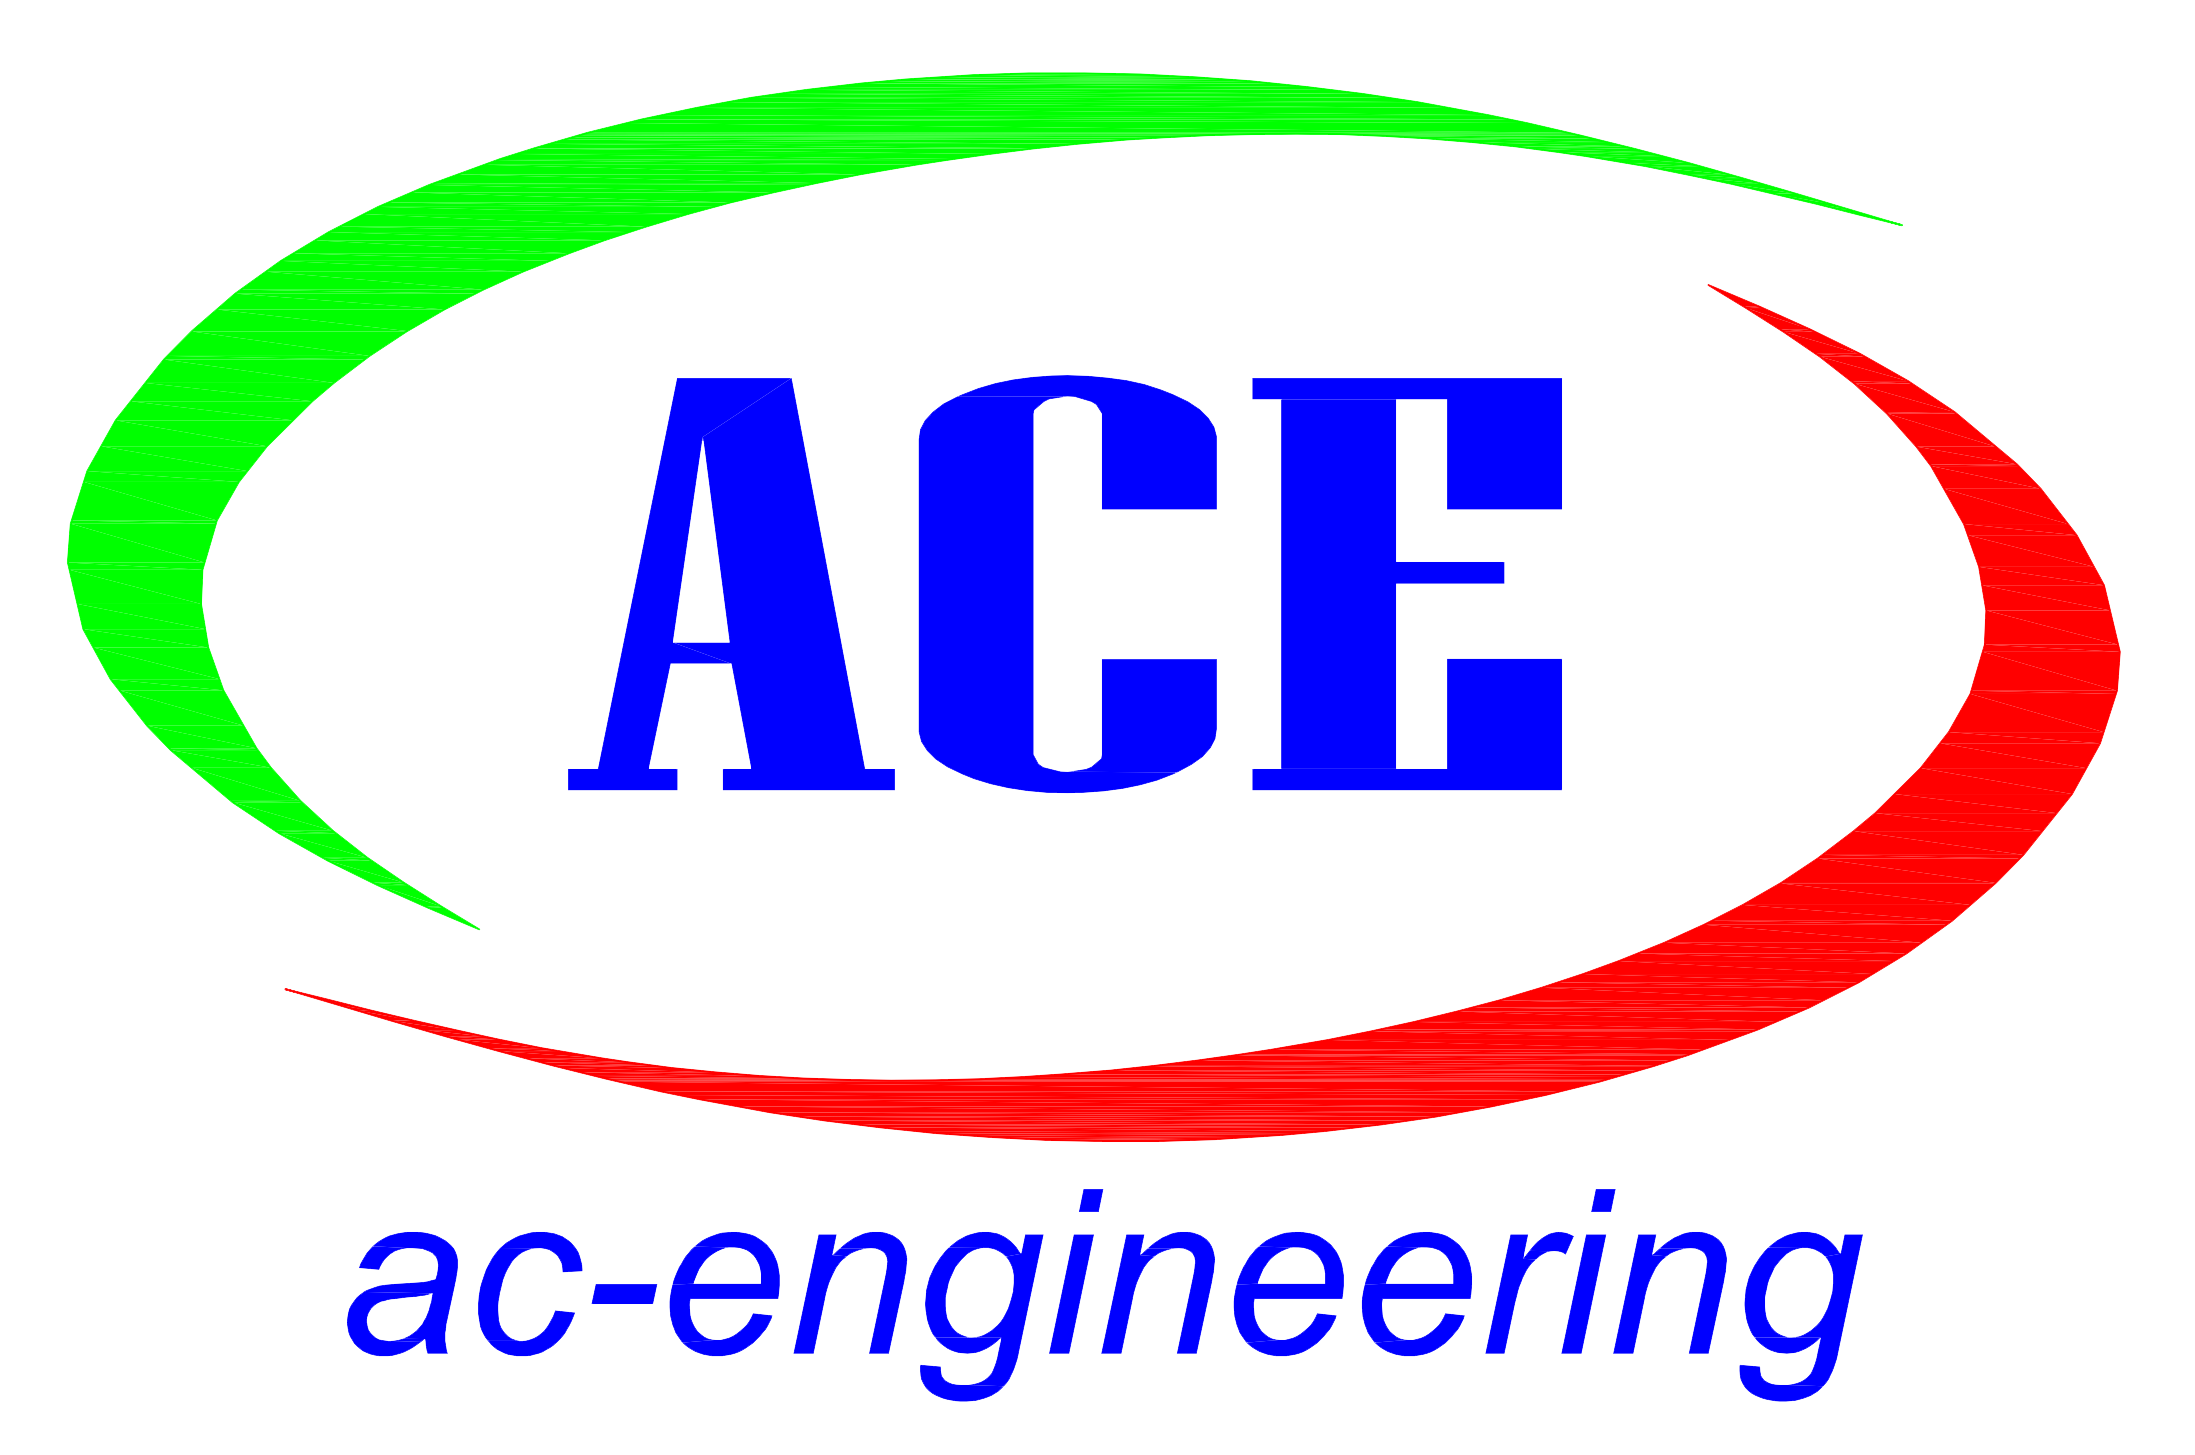 Acbim-engineering